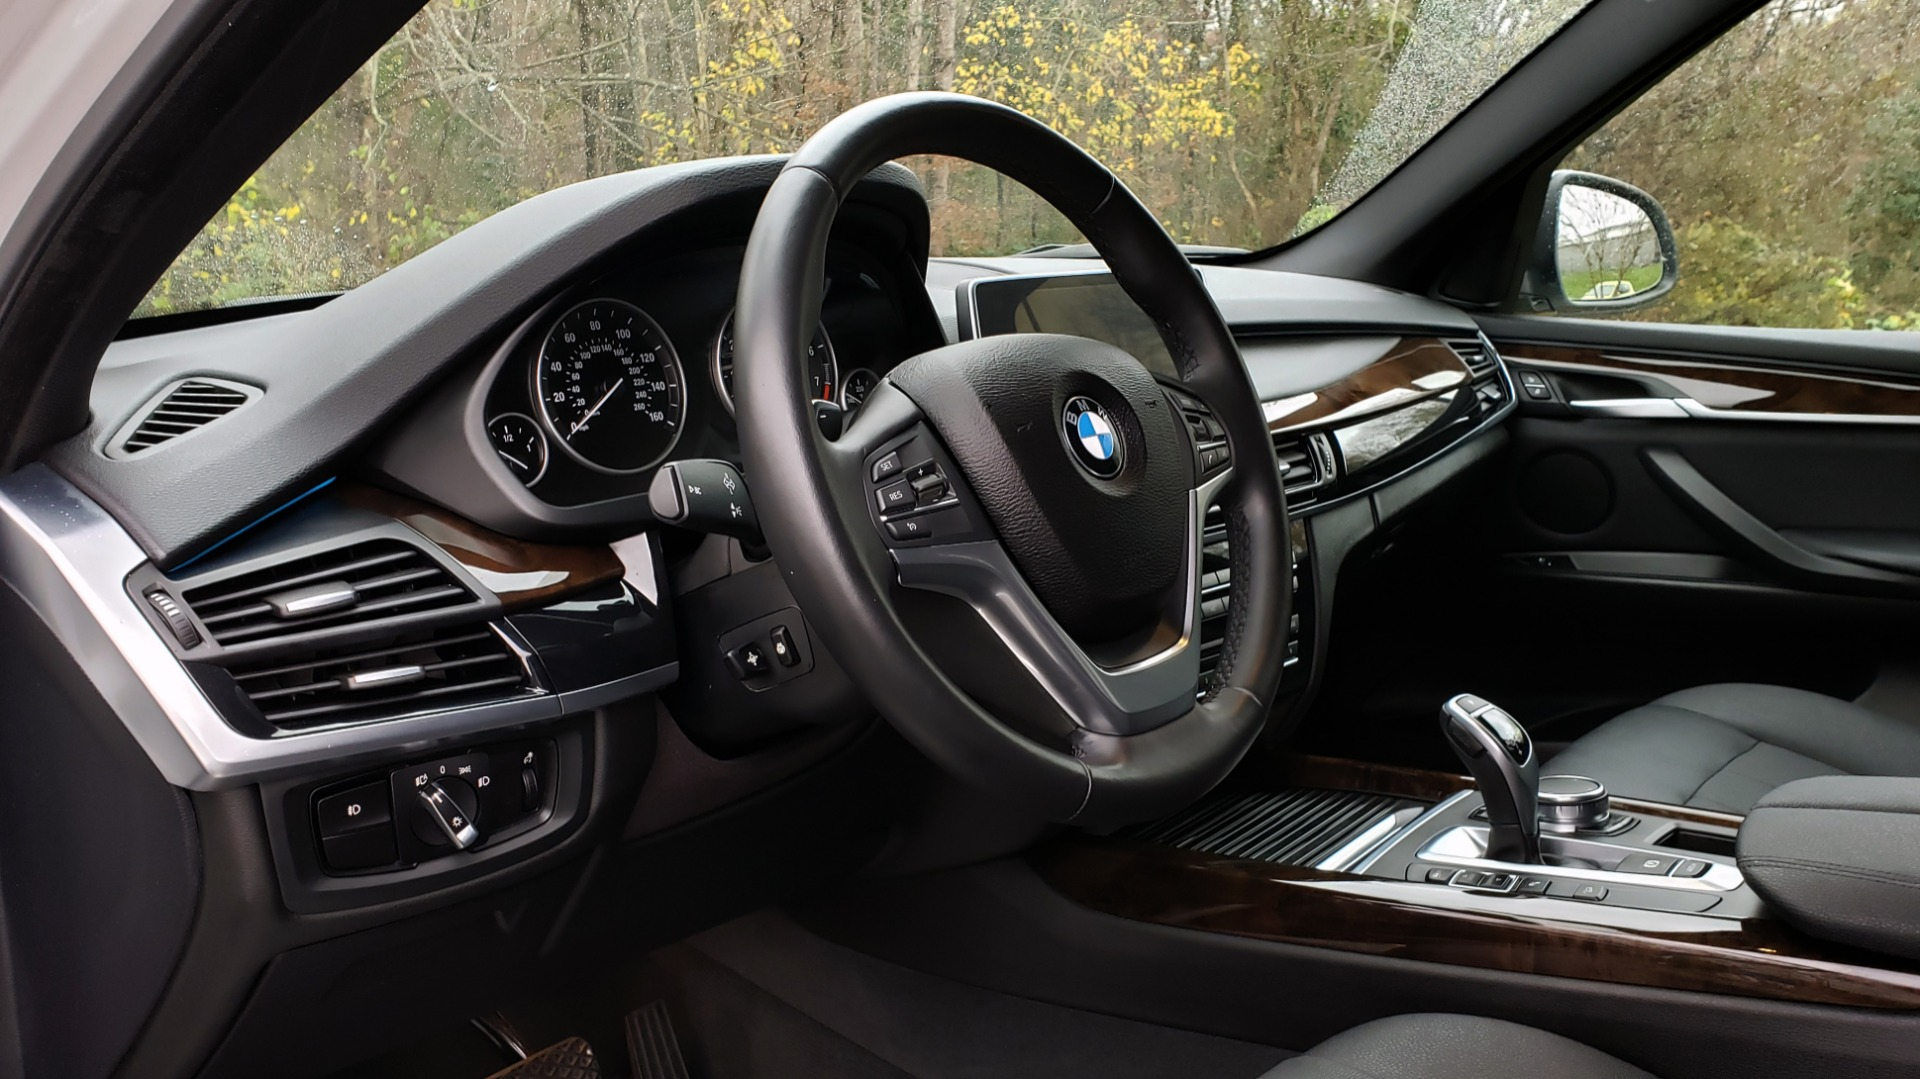 Used 2018 BMW X5 XDRIVE35I / AWD / NAV / HTD STS / SUNROOF / REARVIEW for sale Sold at Formula Imports in Charlotte NC 28227 35